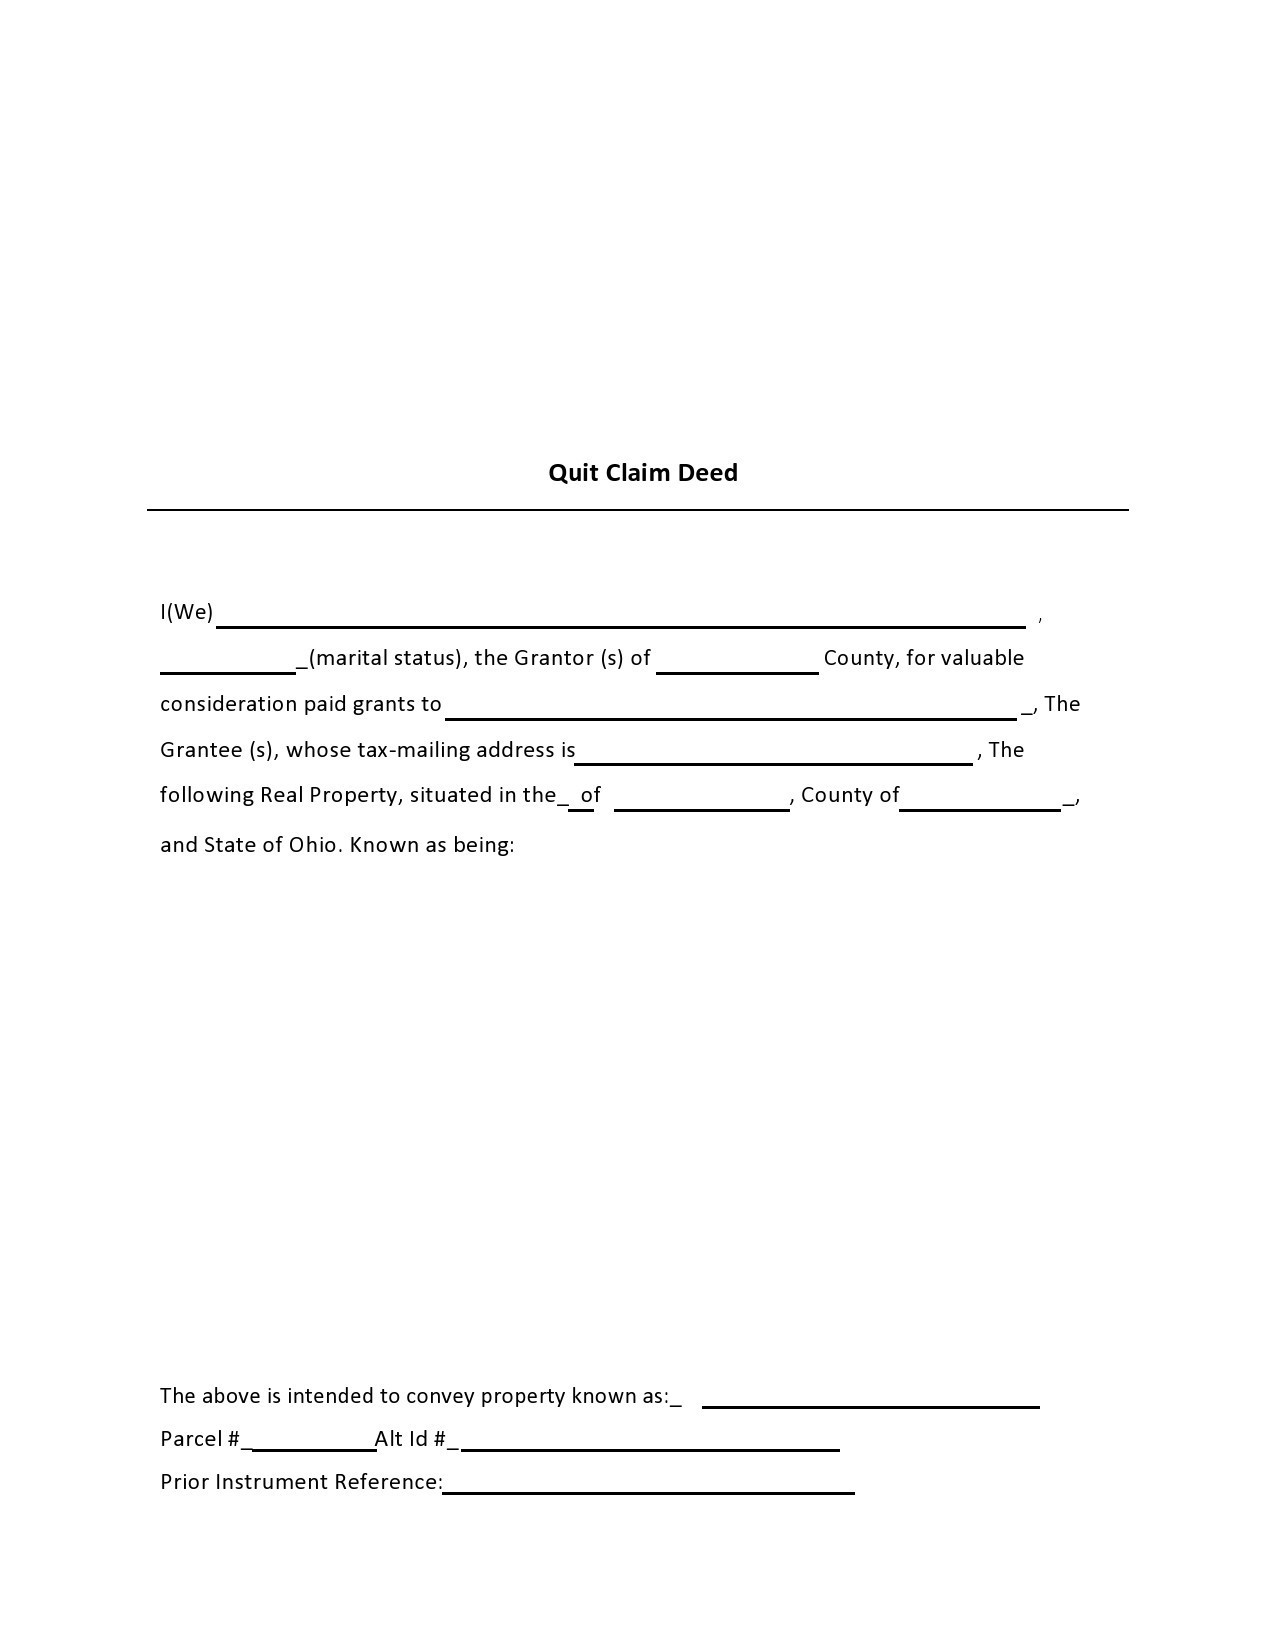 Free quit claim deed form 18